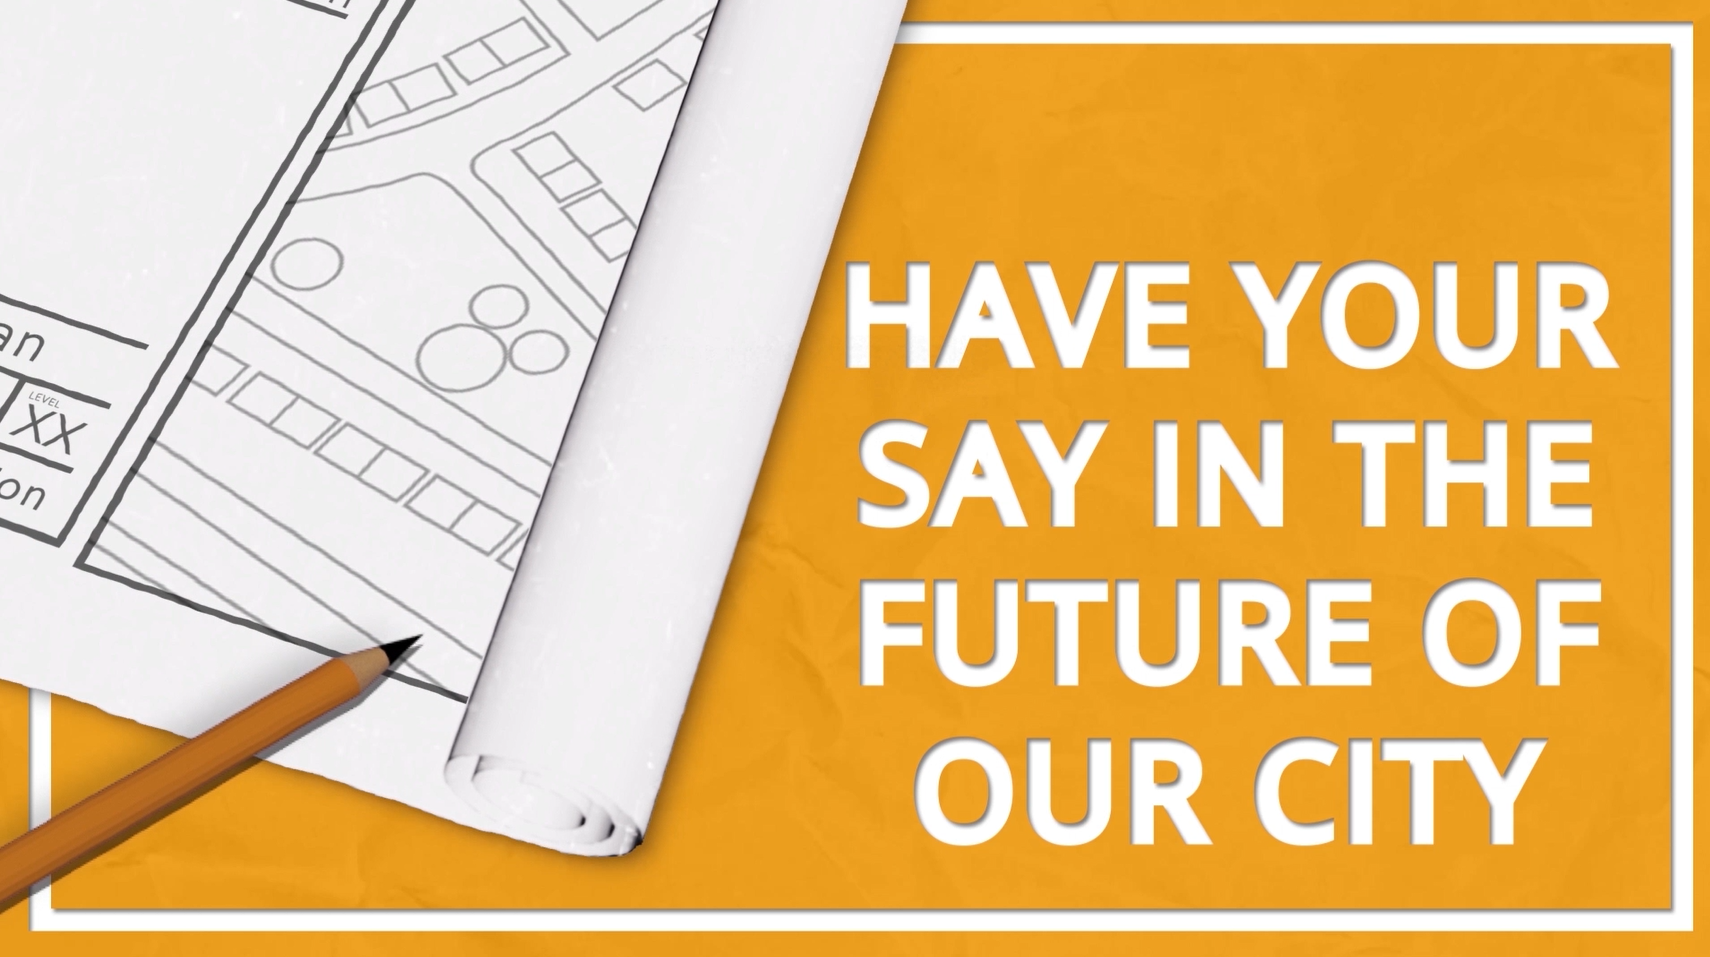 Help Shape the Future of Our City